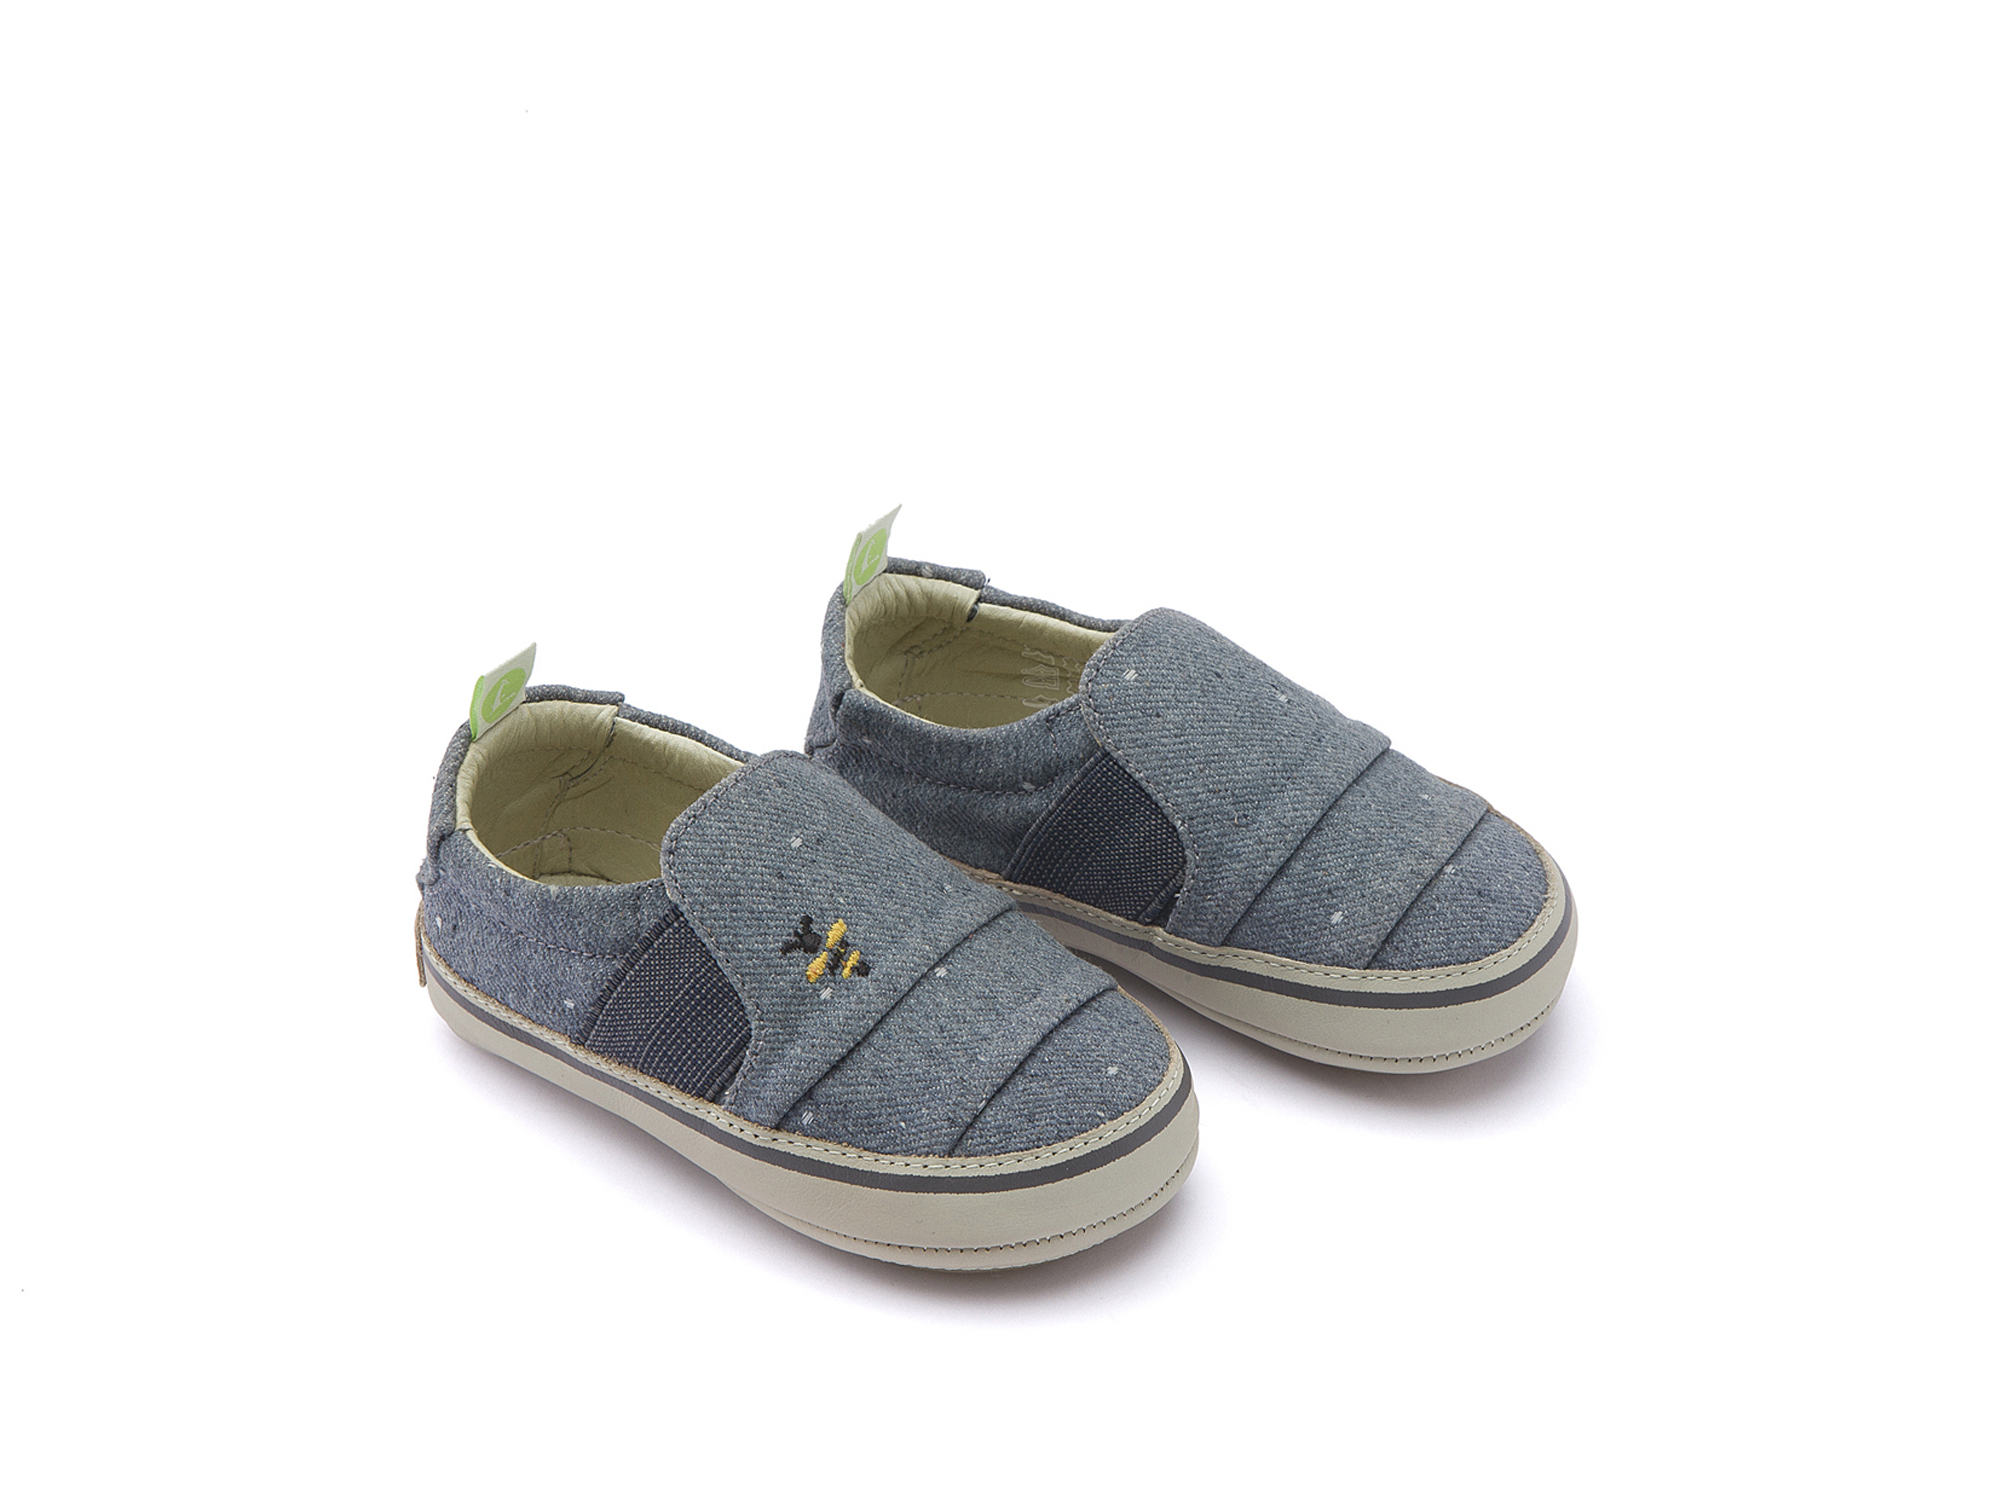 Tênis Slippy Bluish Space Canvas Beeswax/ Pumice Baby 0 à 2 anos - 0